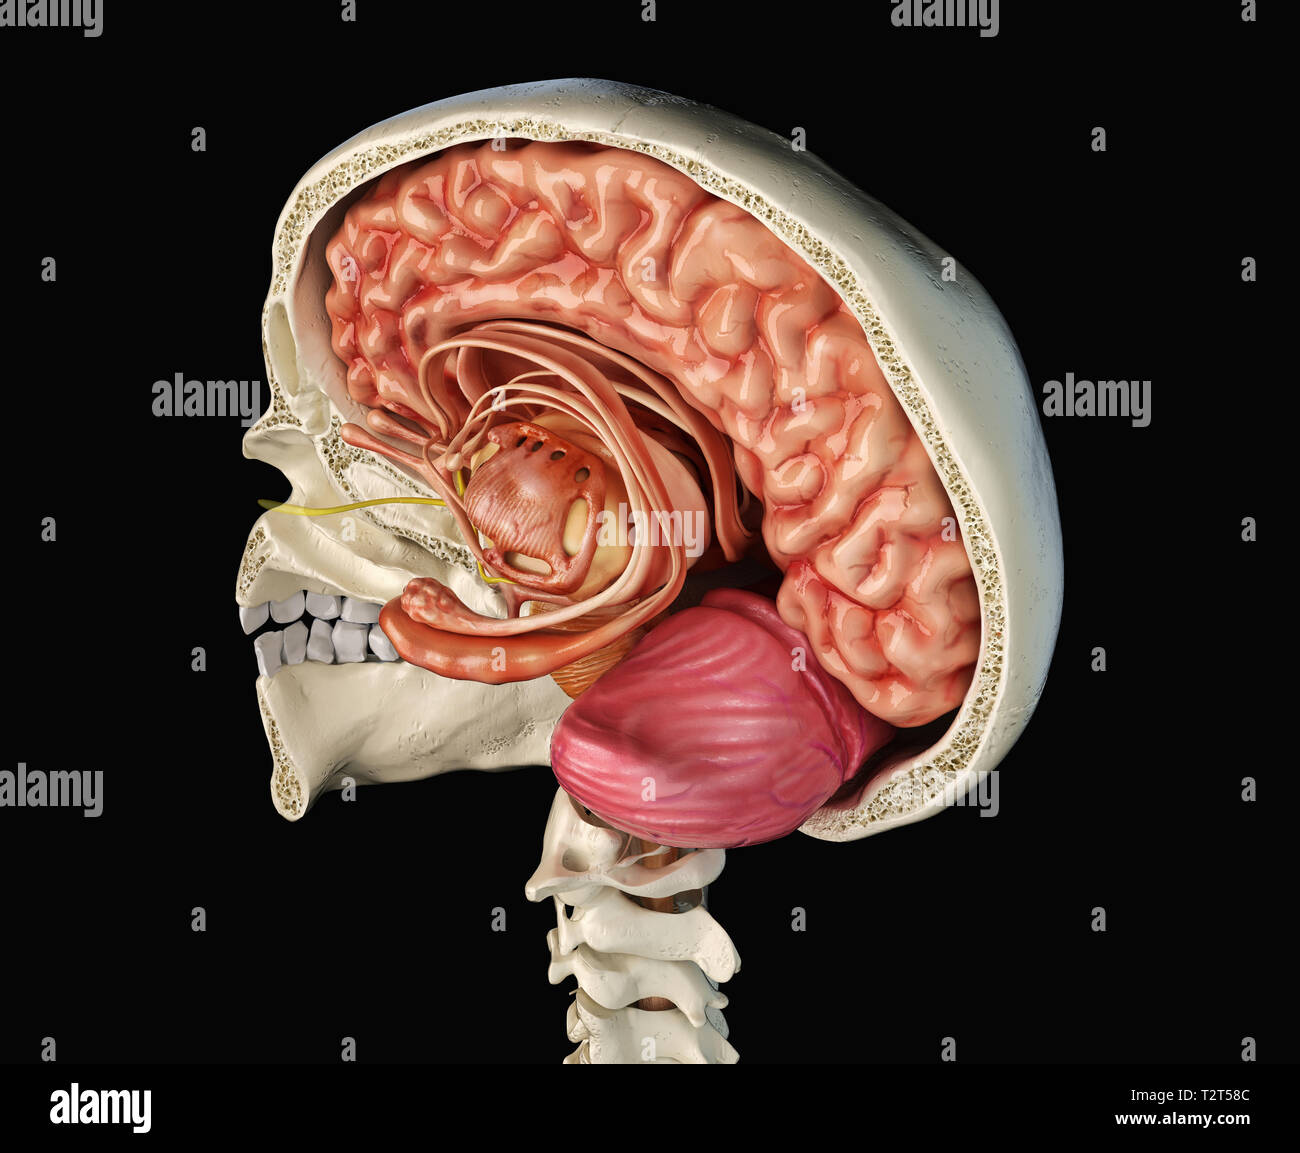 Human skull mid sagittal cross-section with brain. Perspective view on black background. - Stock Image